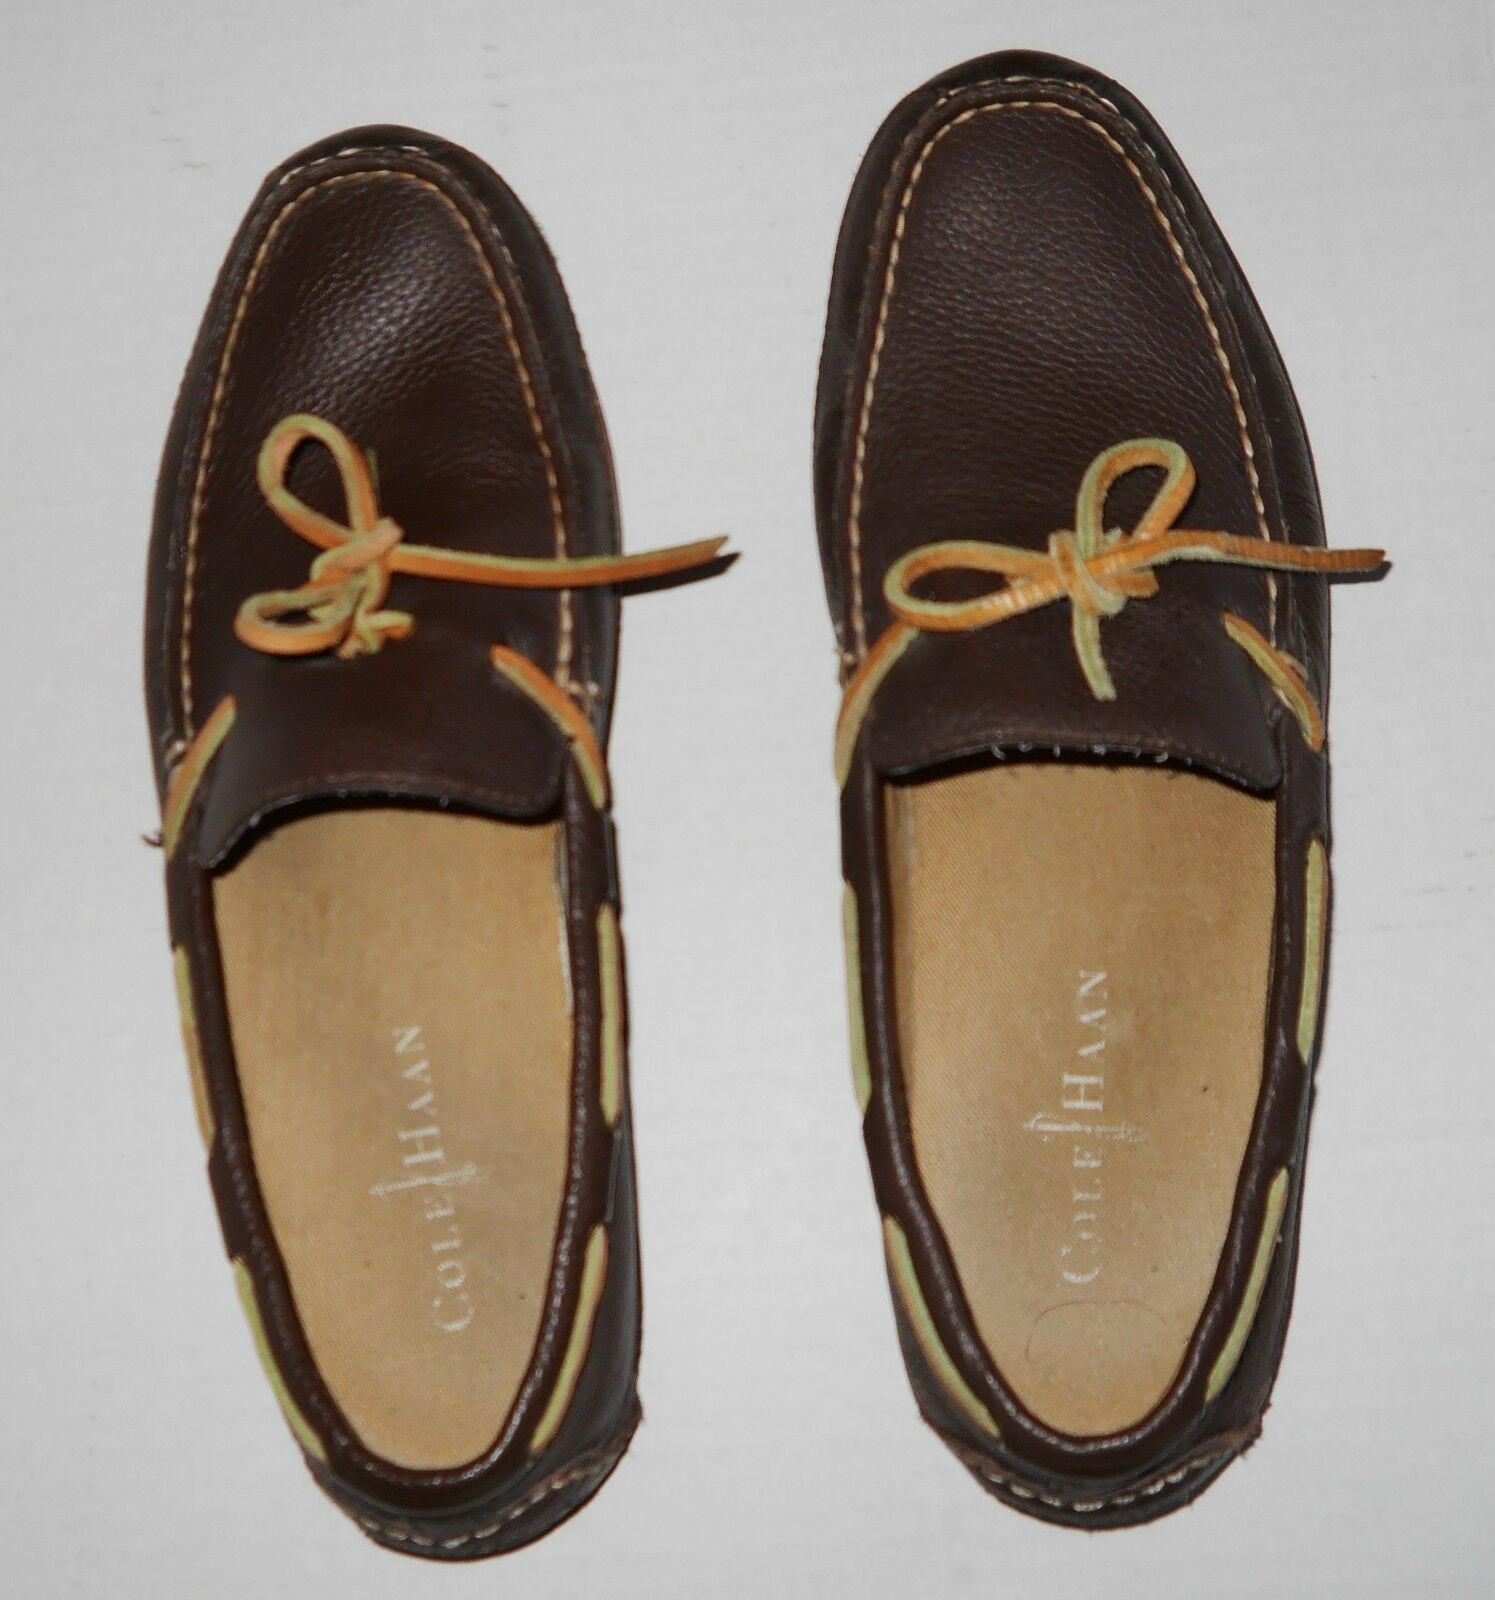 Cole Haan shoes Leather Boat Driving Moc Loafer Brown Ties  8M